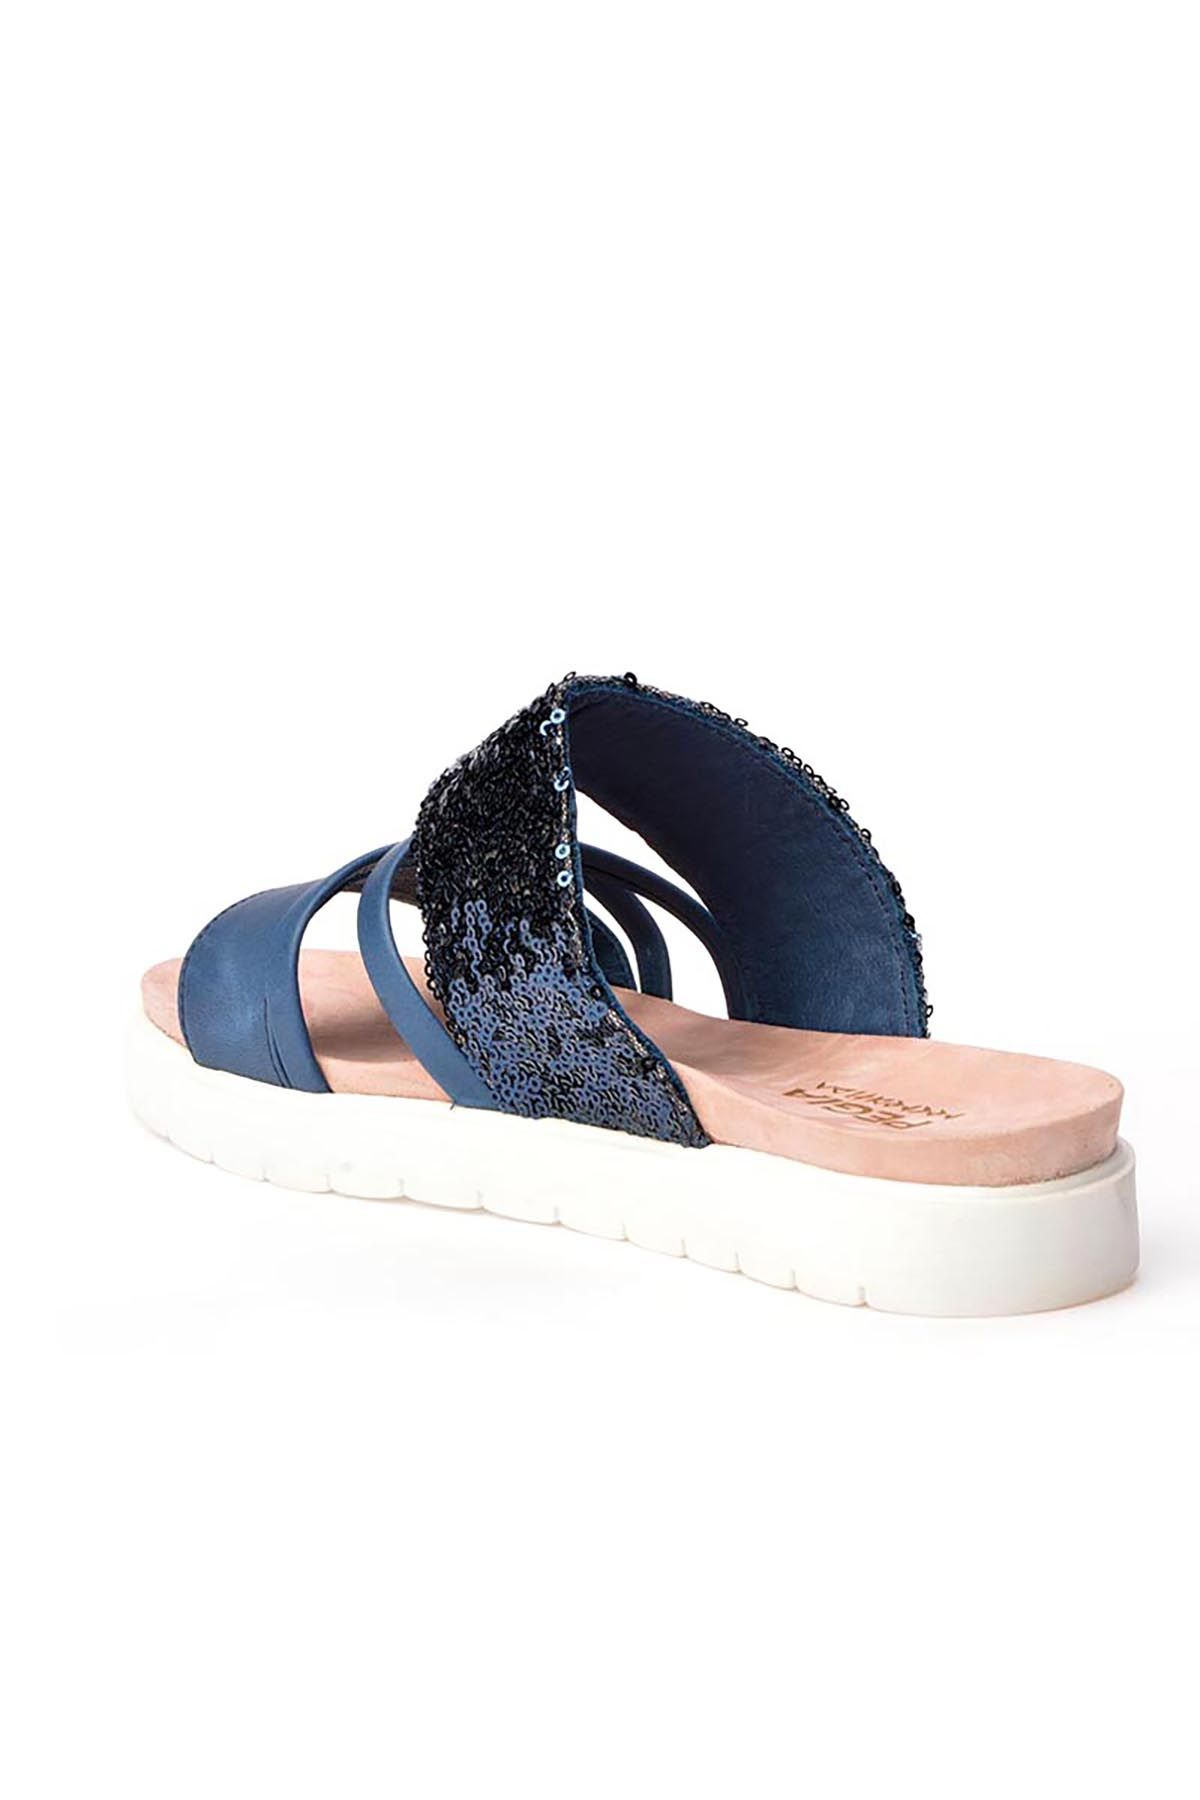 Pegia Alesia Women Slippers From Genuine Leather REC-005 Blue